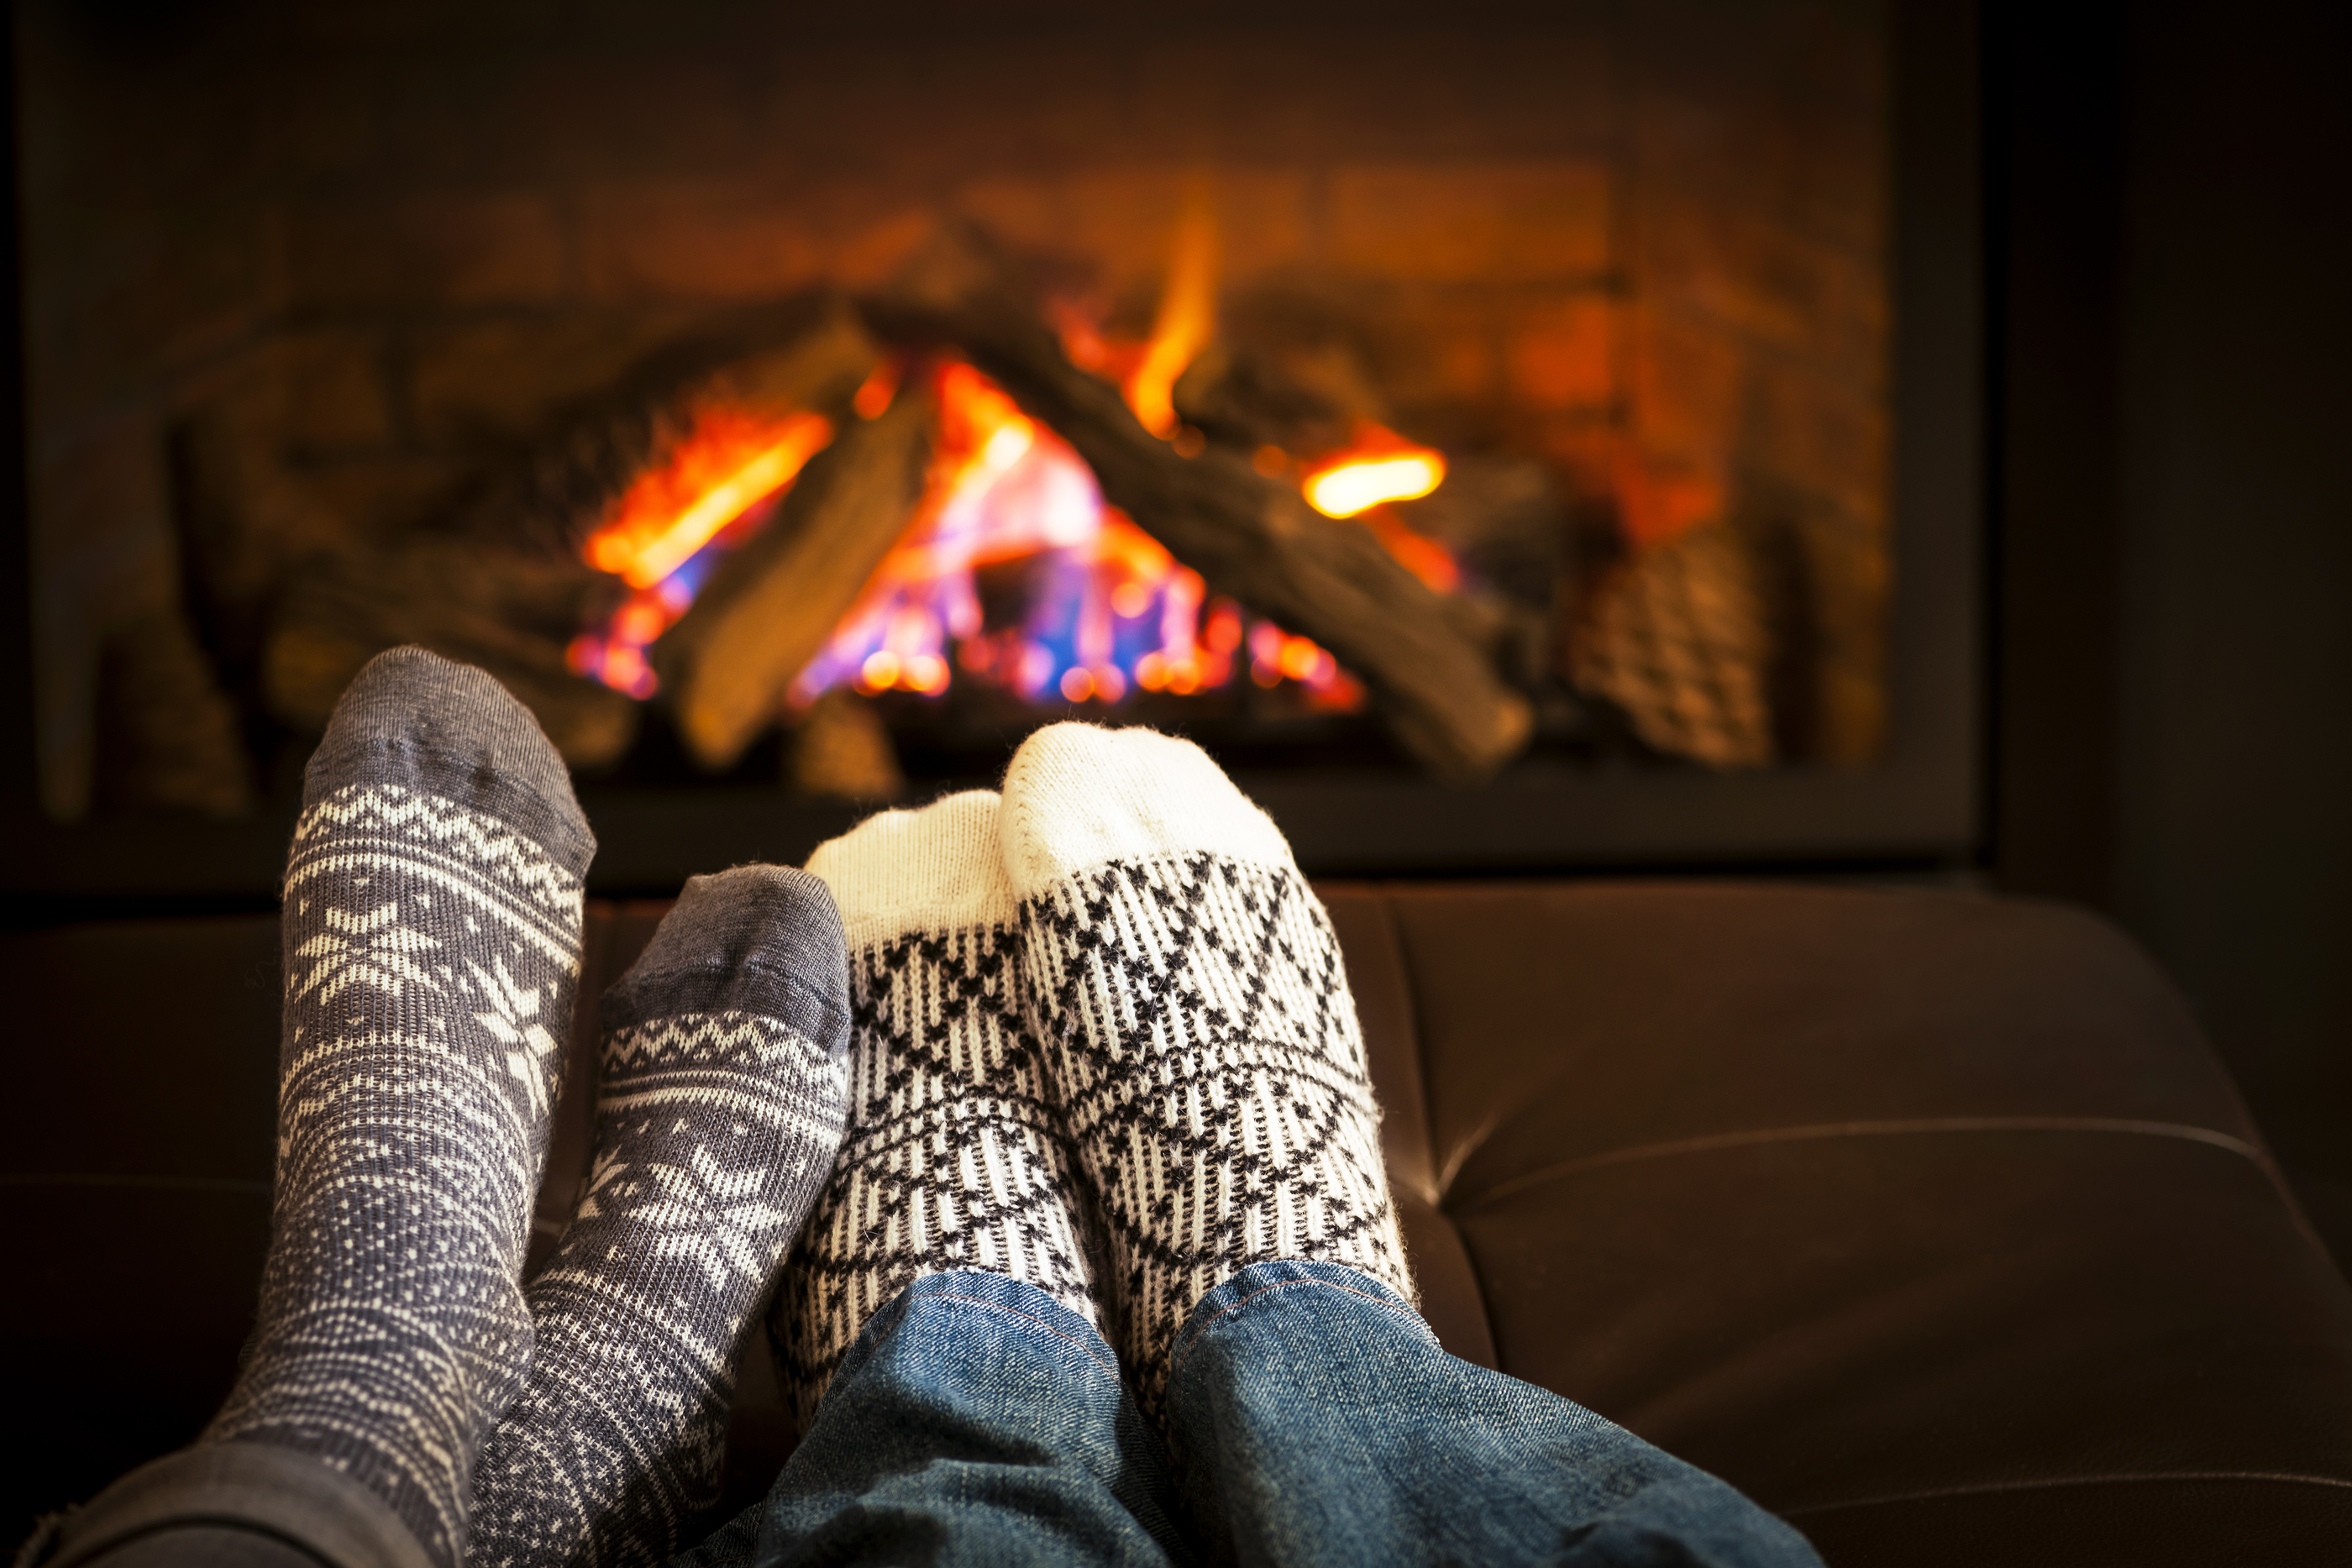 Feet Warming By Fireplace.jpg